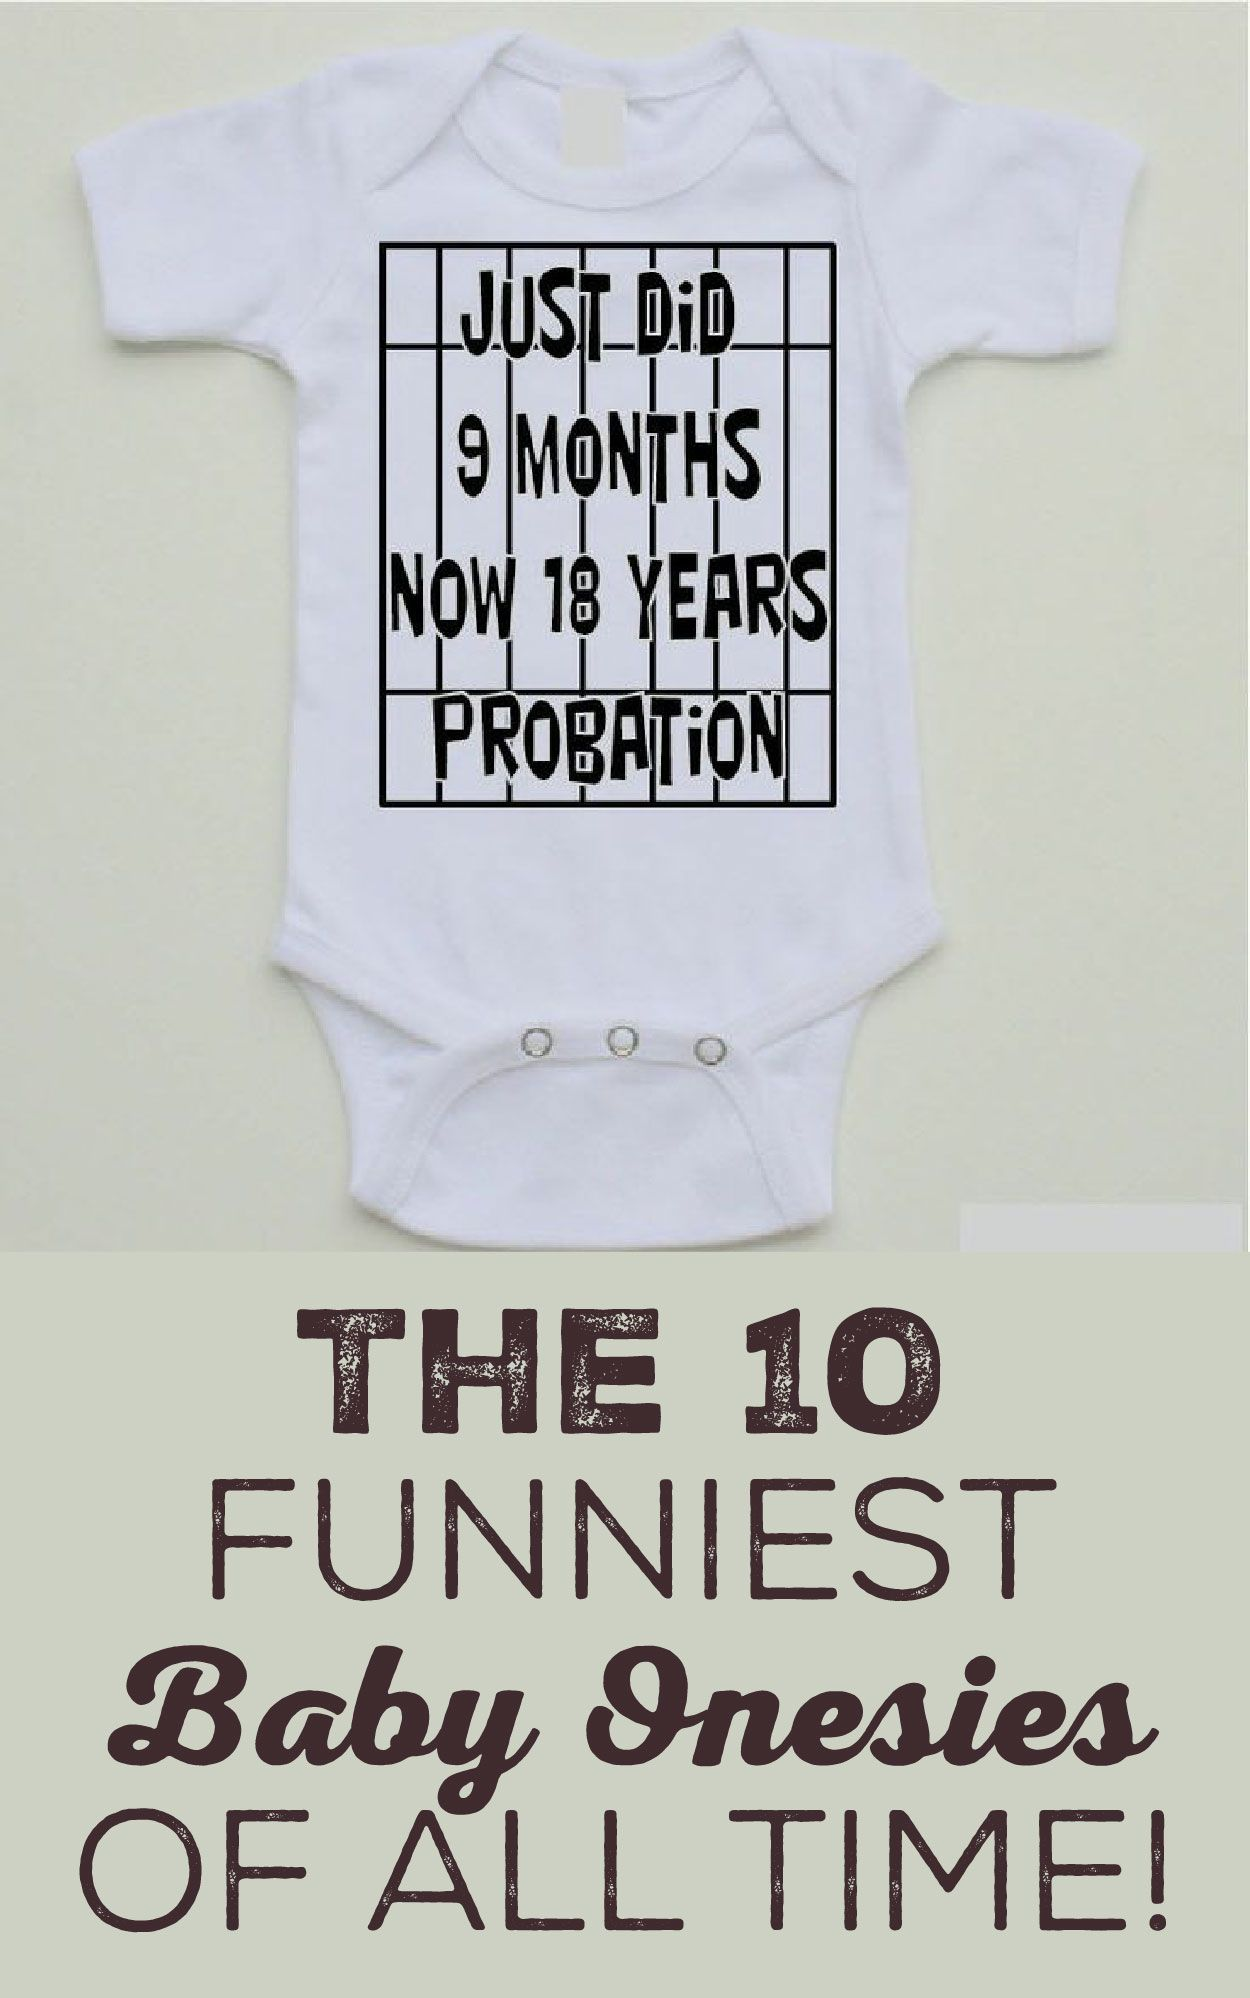 90fc643d6 Top 10 Funniest Baby Onesies of All Time! | Adorable | Funny babies ...